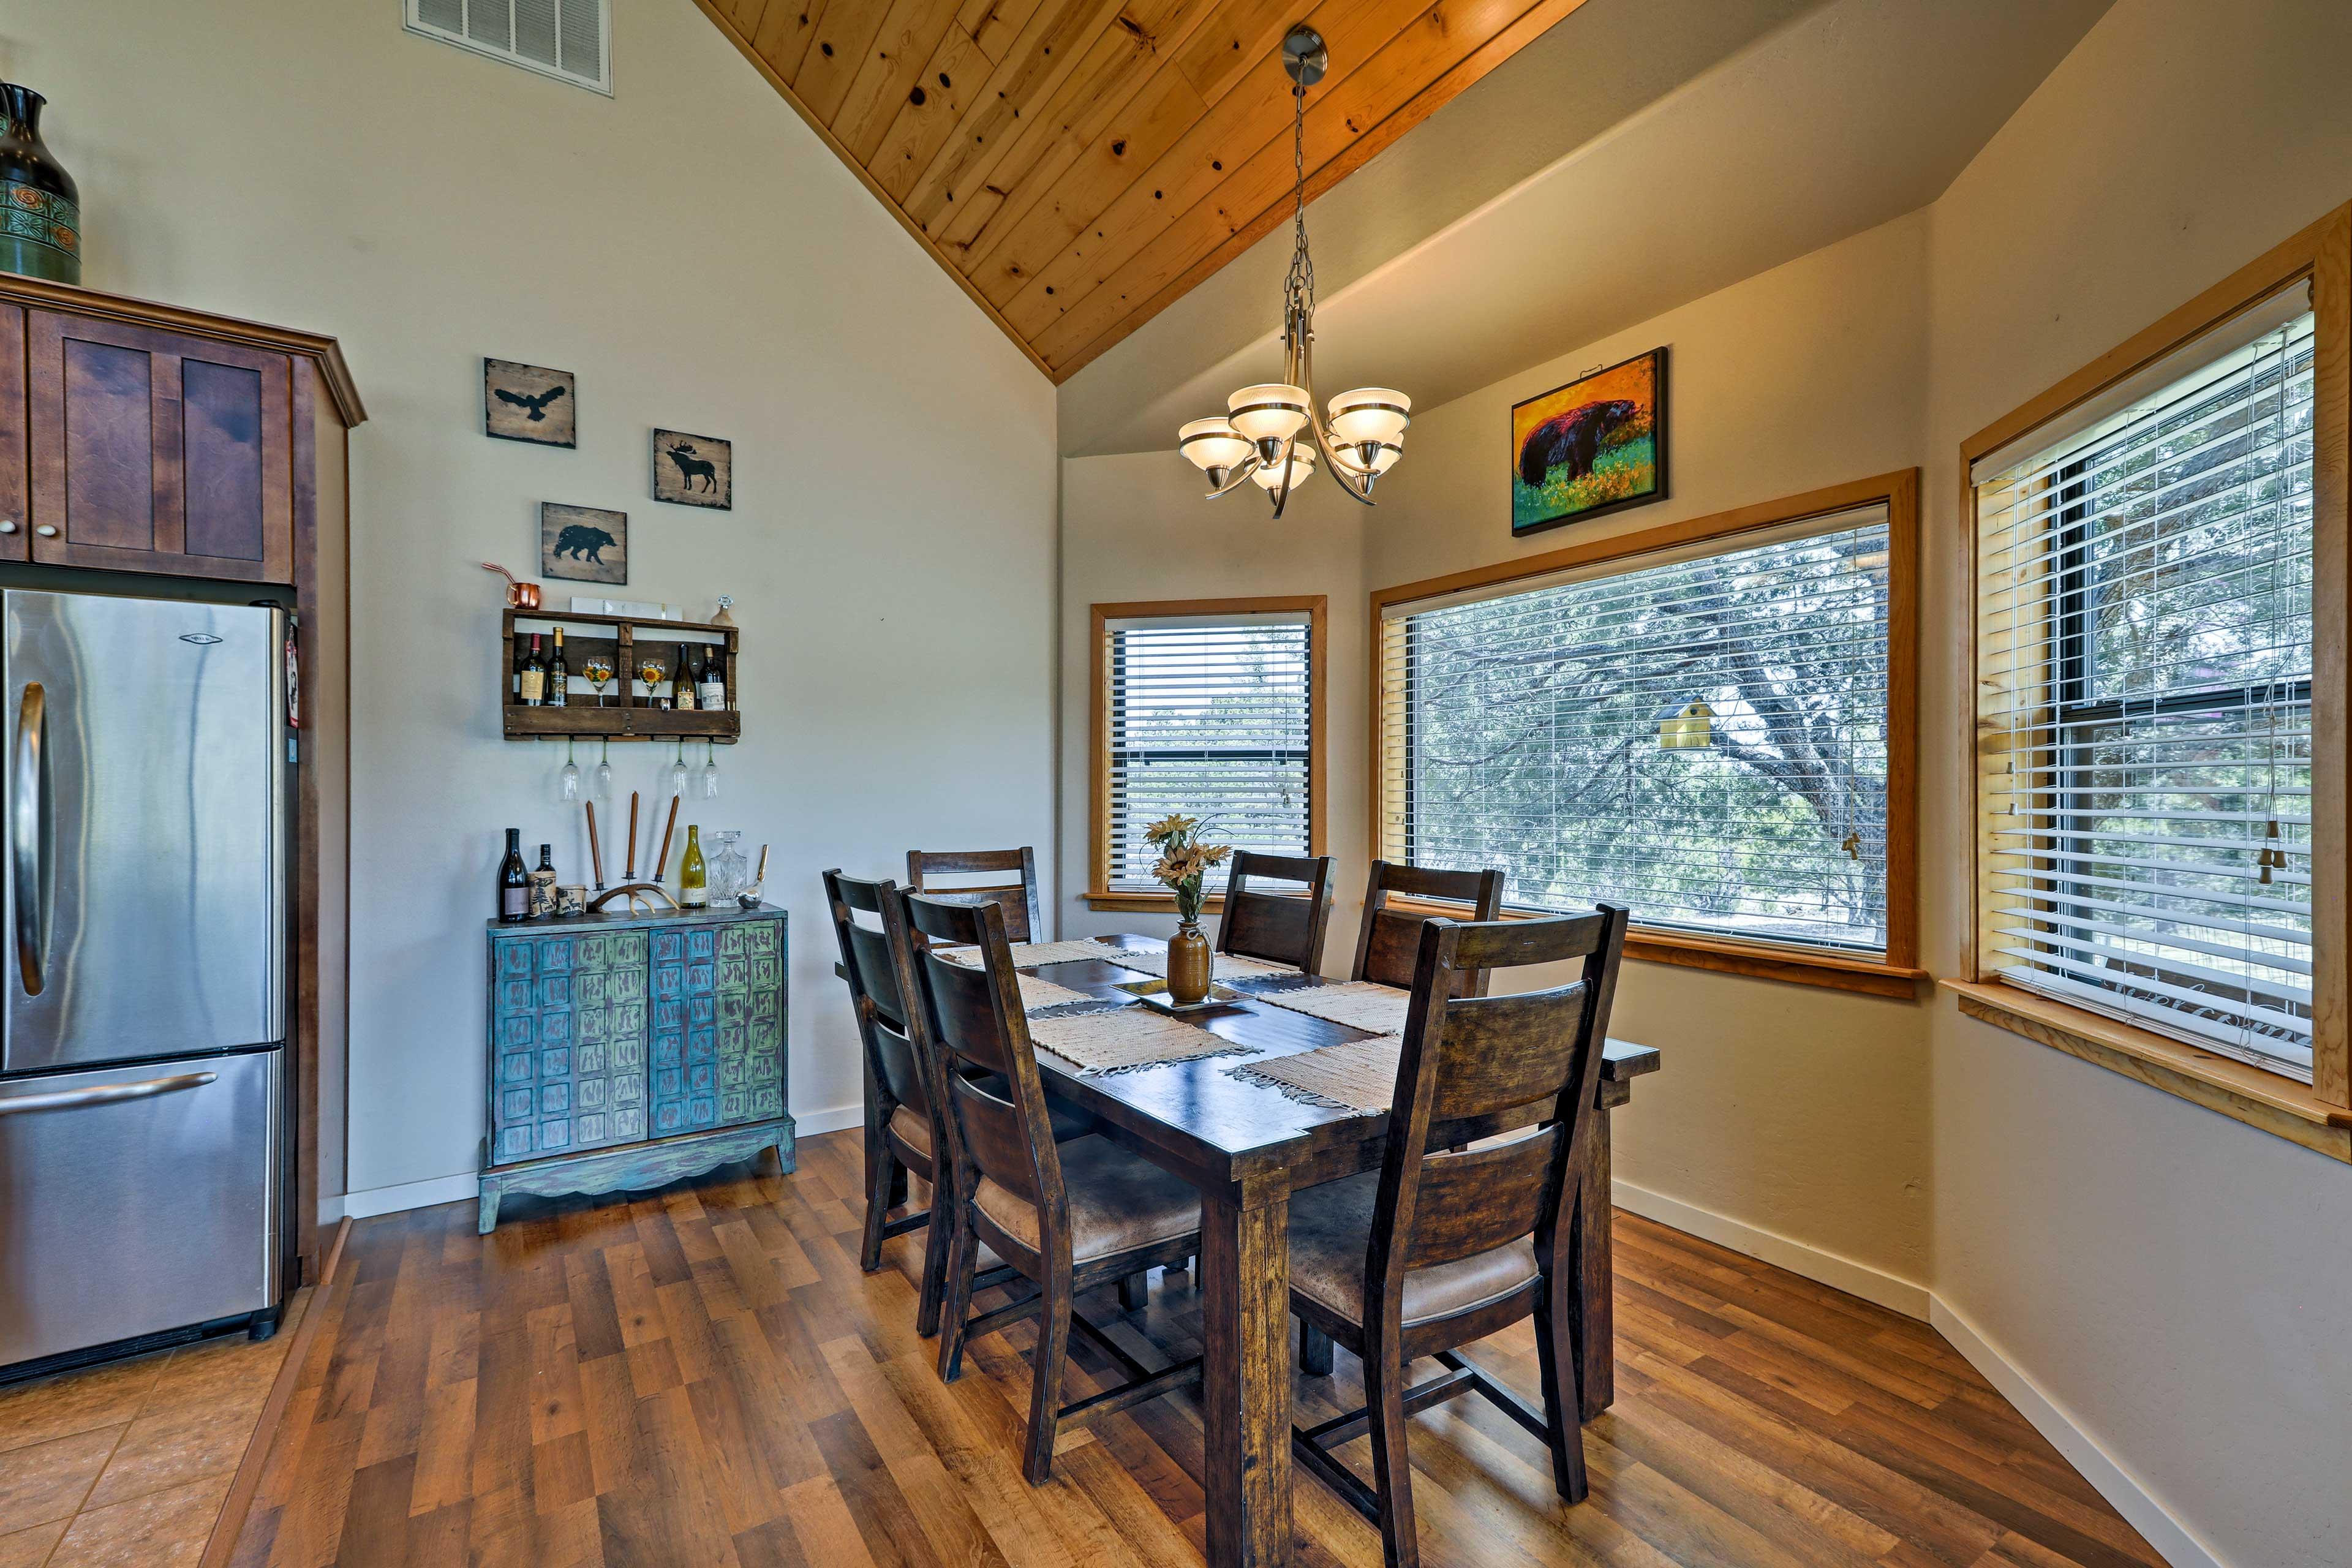 Enjoy holiday meals at the 6-person dining table.